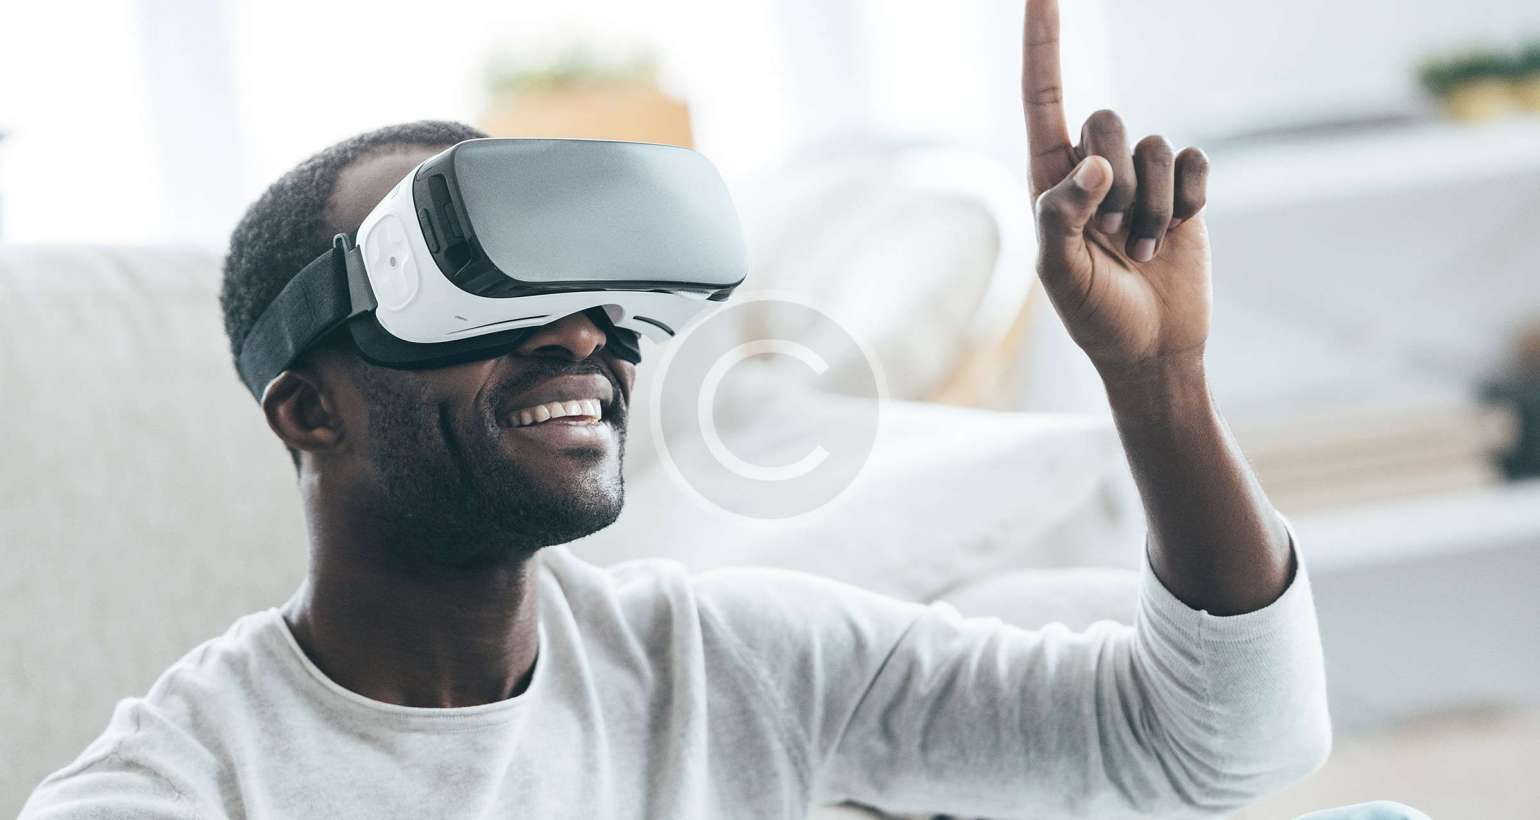 Advantages & Disadvantages of Virtual Reality